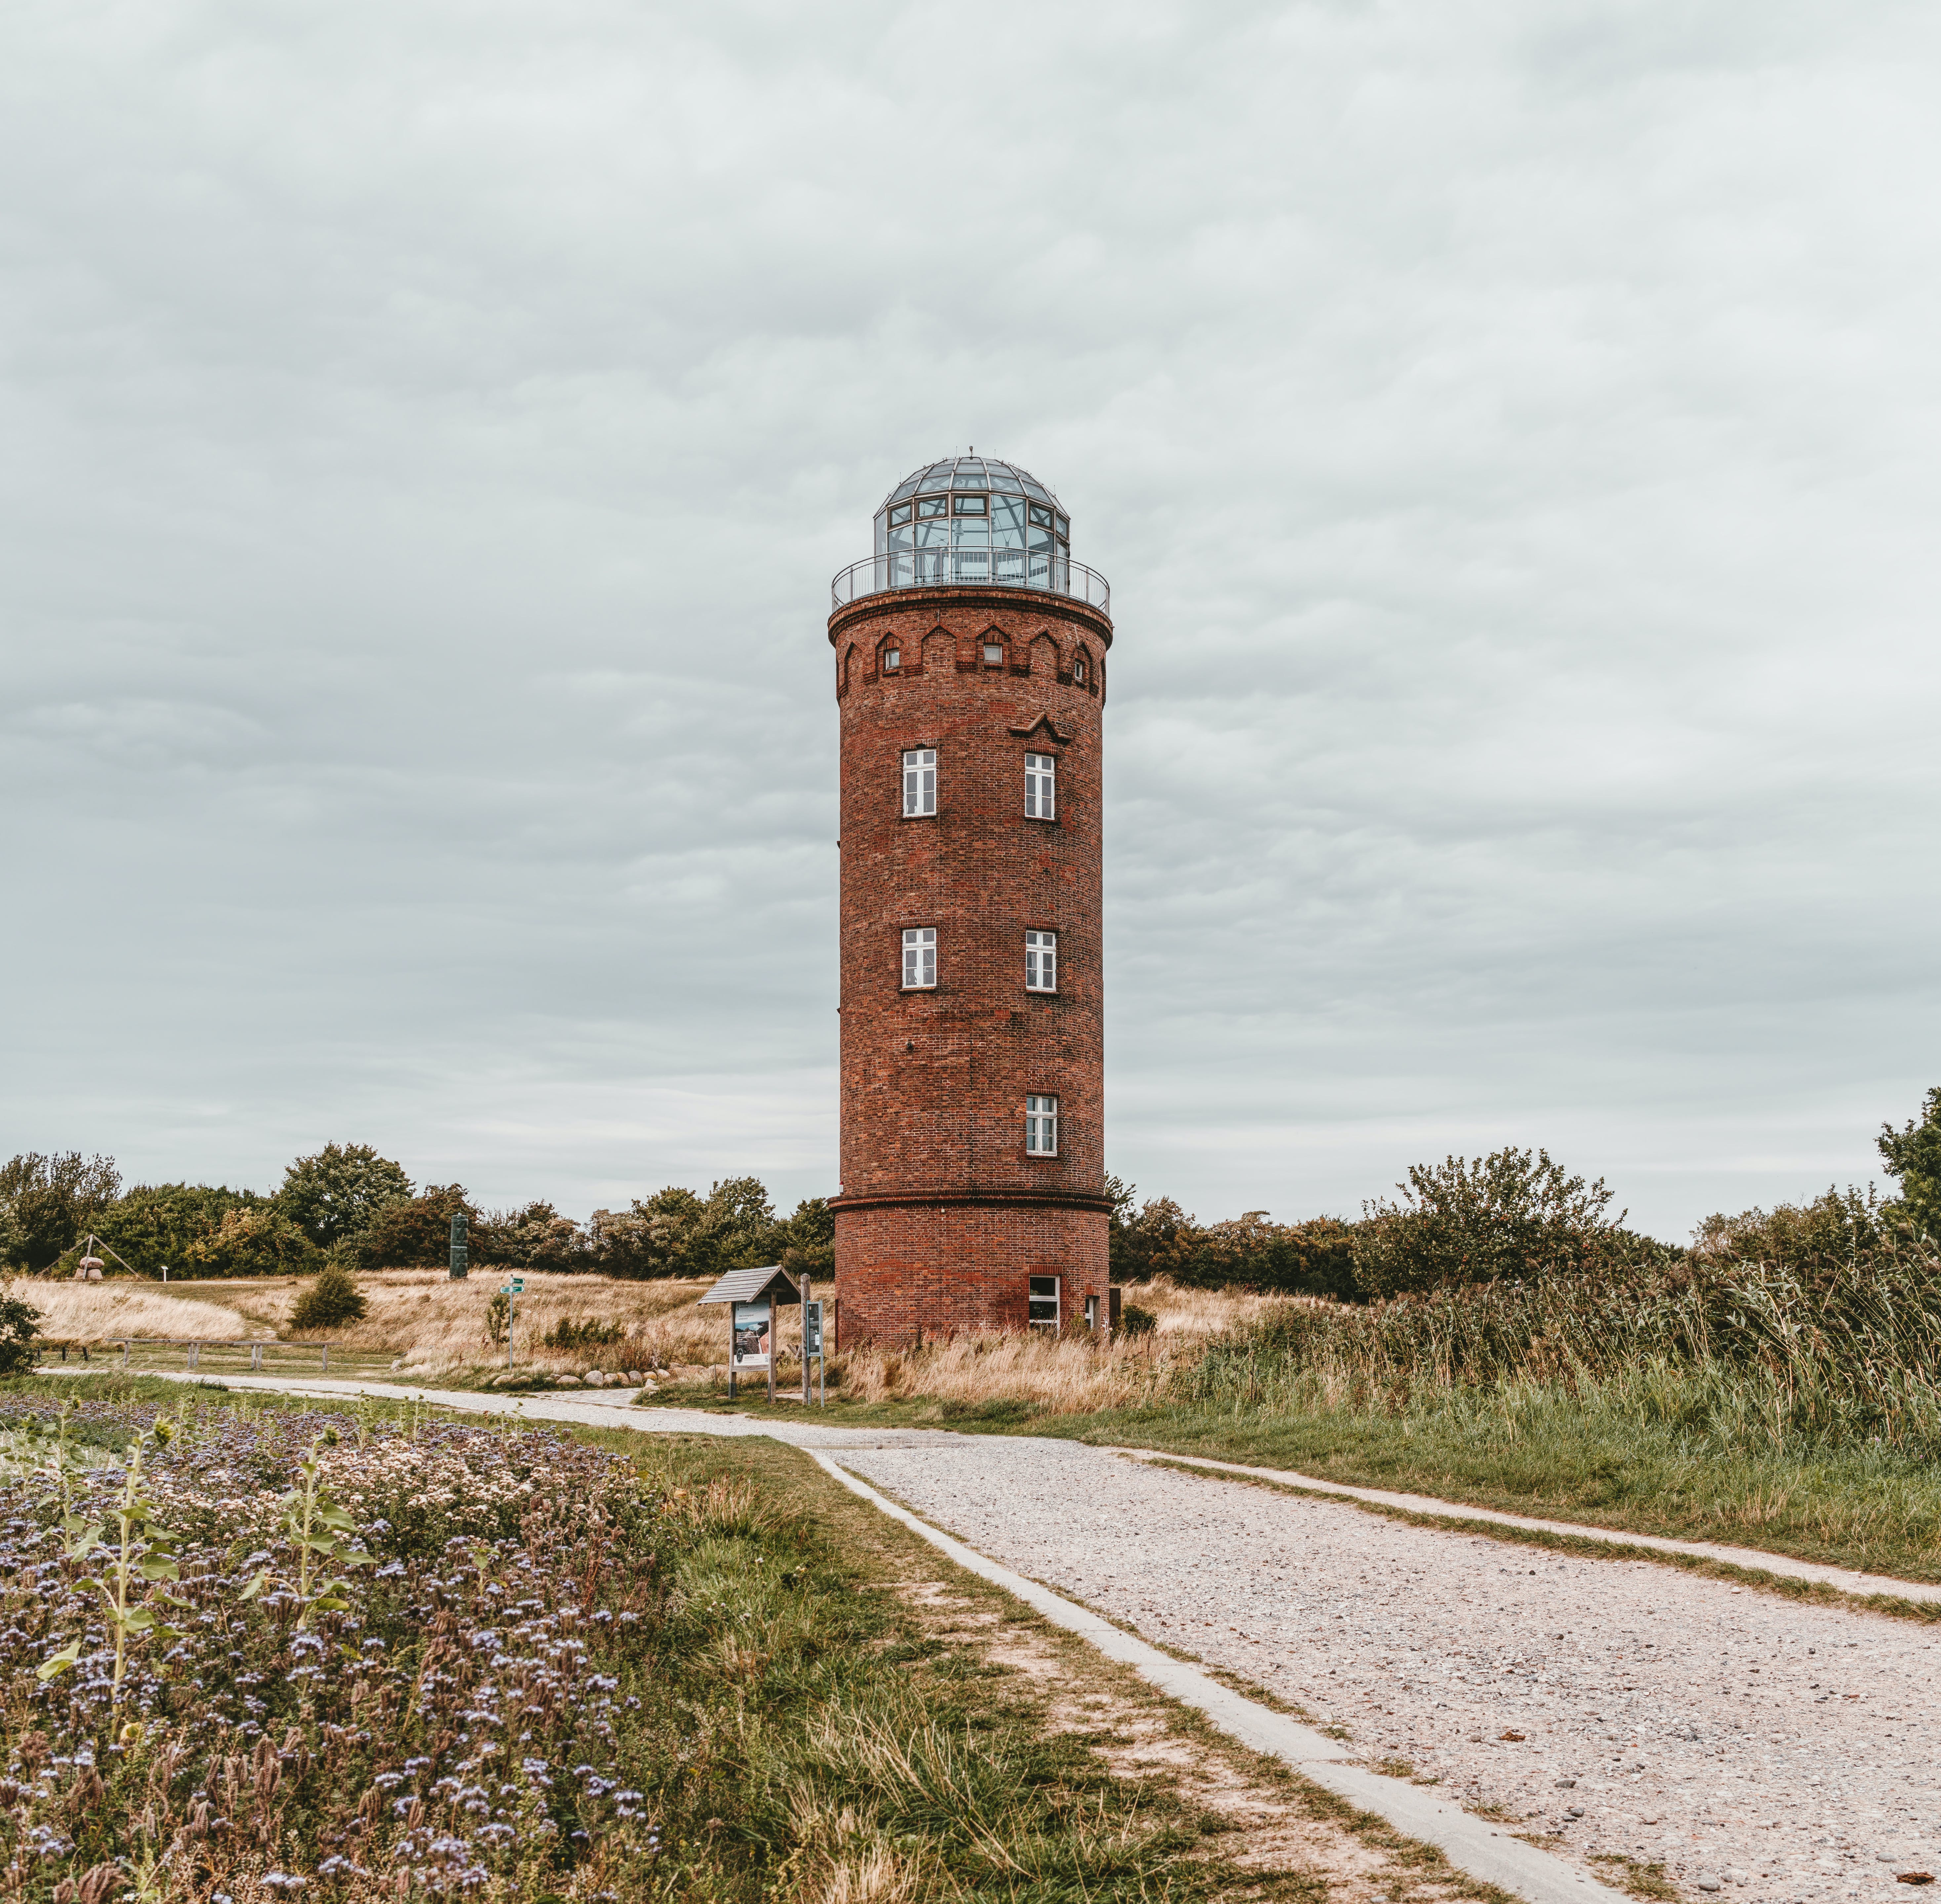 Round Brown Lighthouse Near Road Under White Cloudy Skies